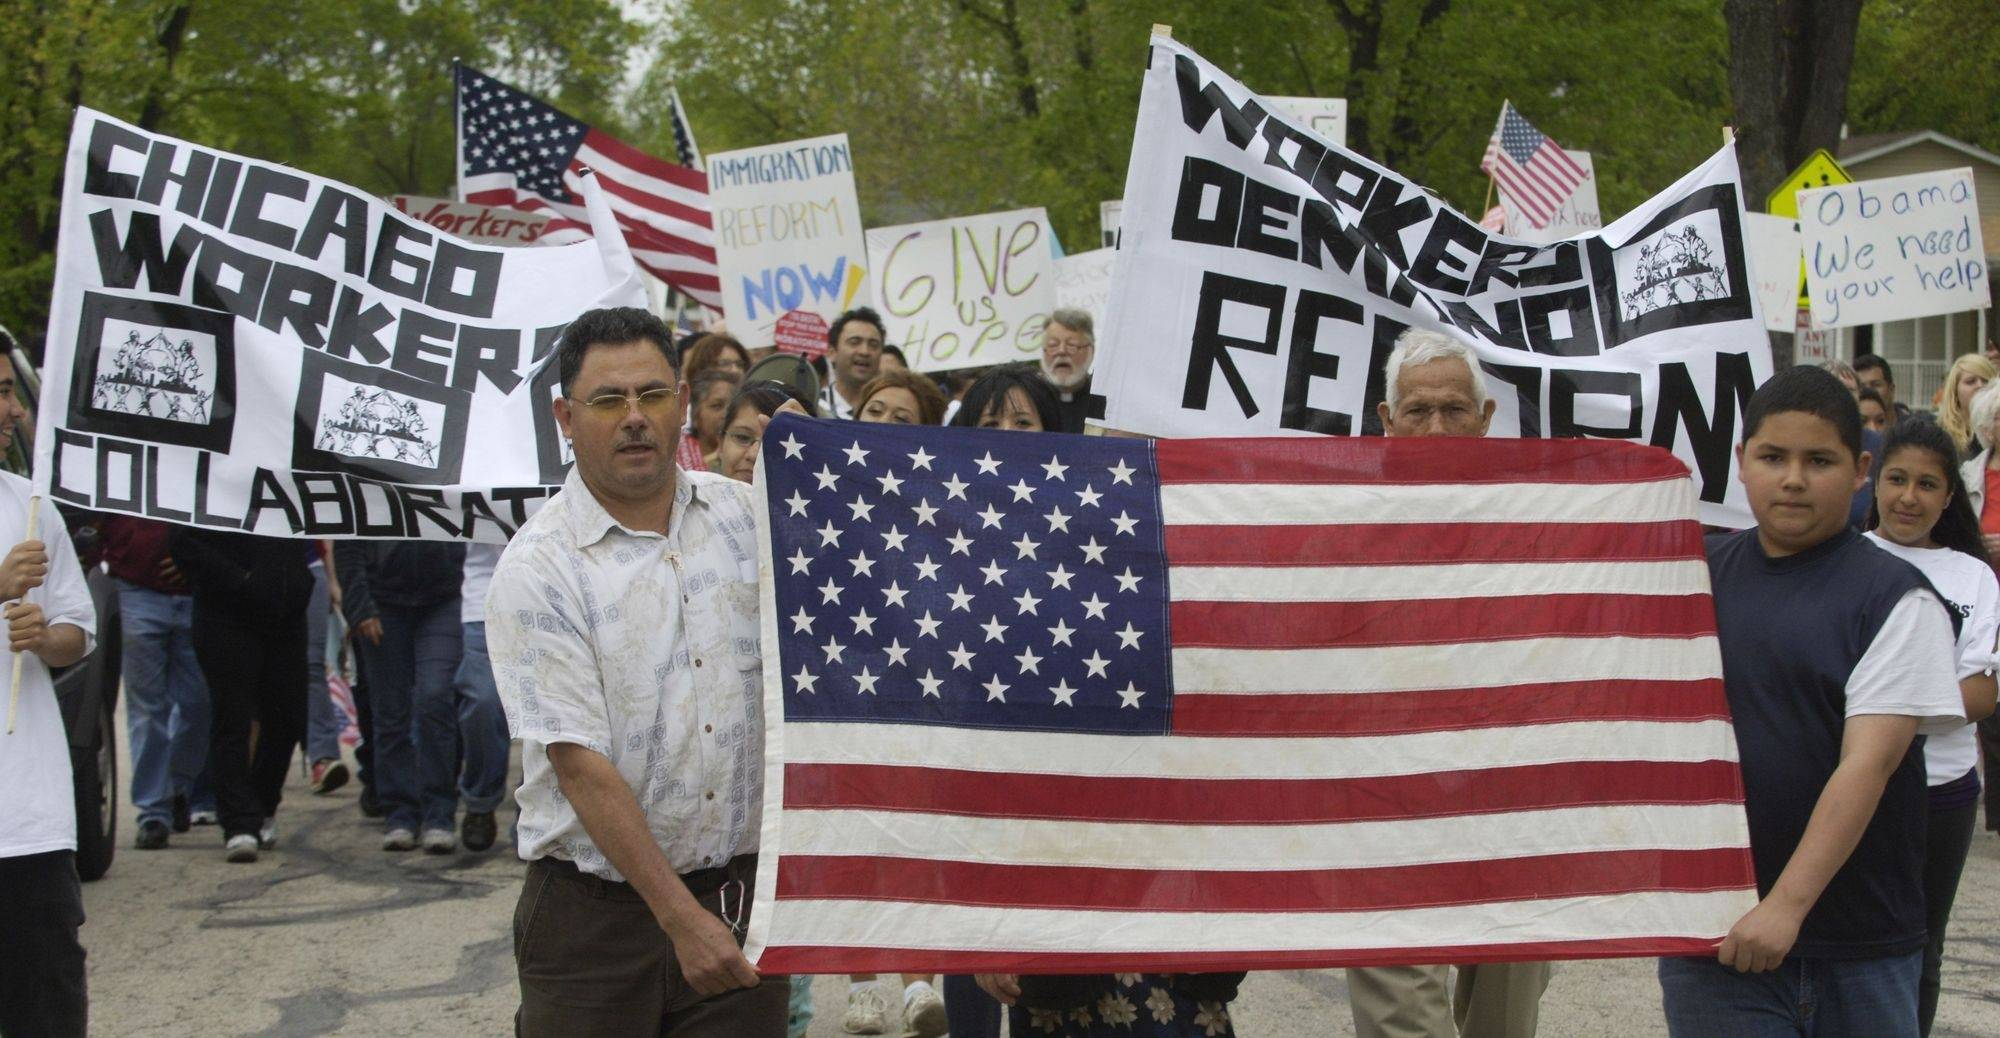 Efren Espino, left, of Round Lake, and his son, Efren Jr., carry the American flag at the front of a pro-immigration reform march along Anderson Drive in Palatine Saturday.